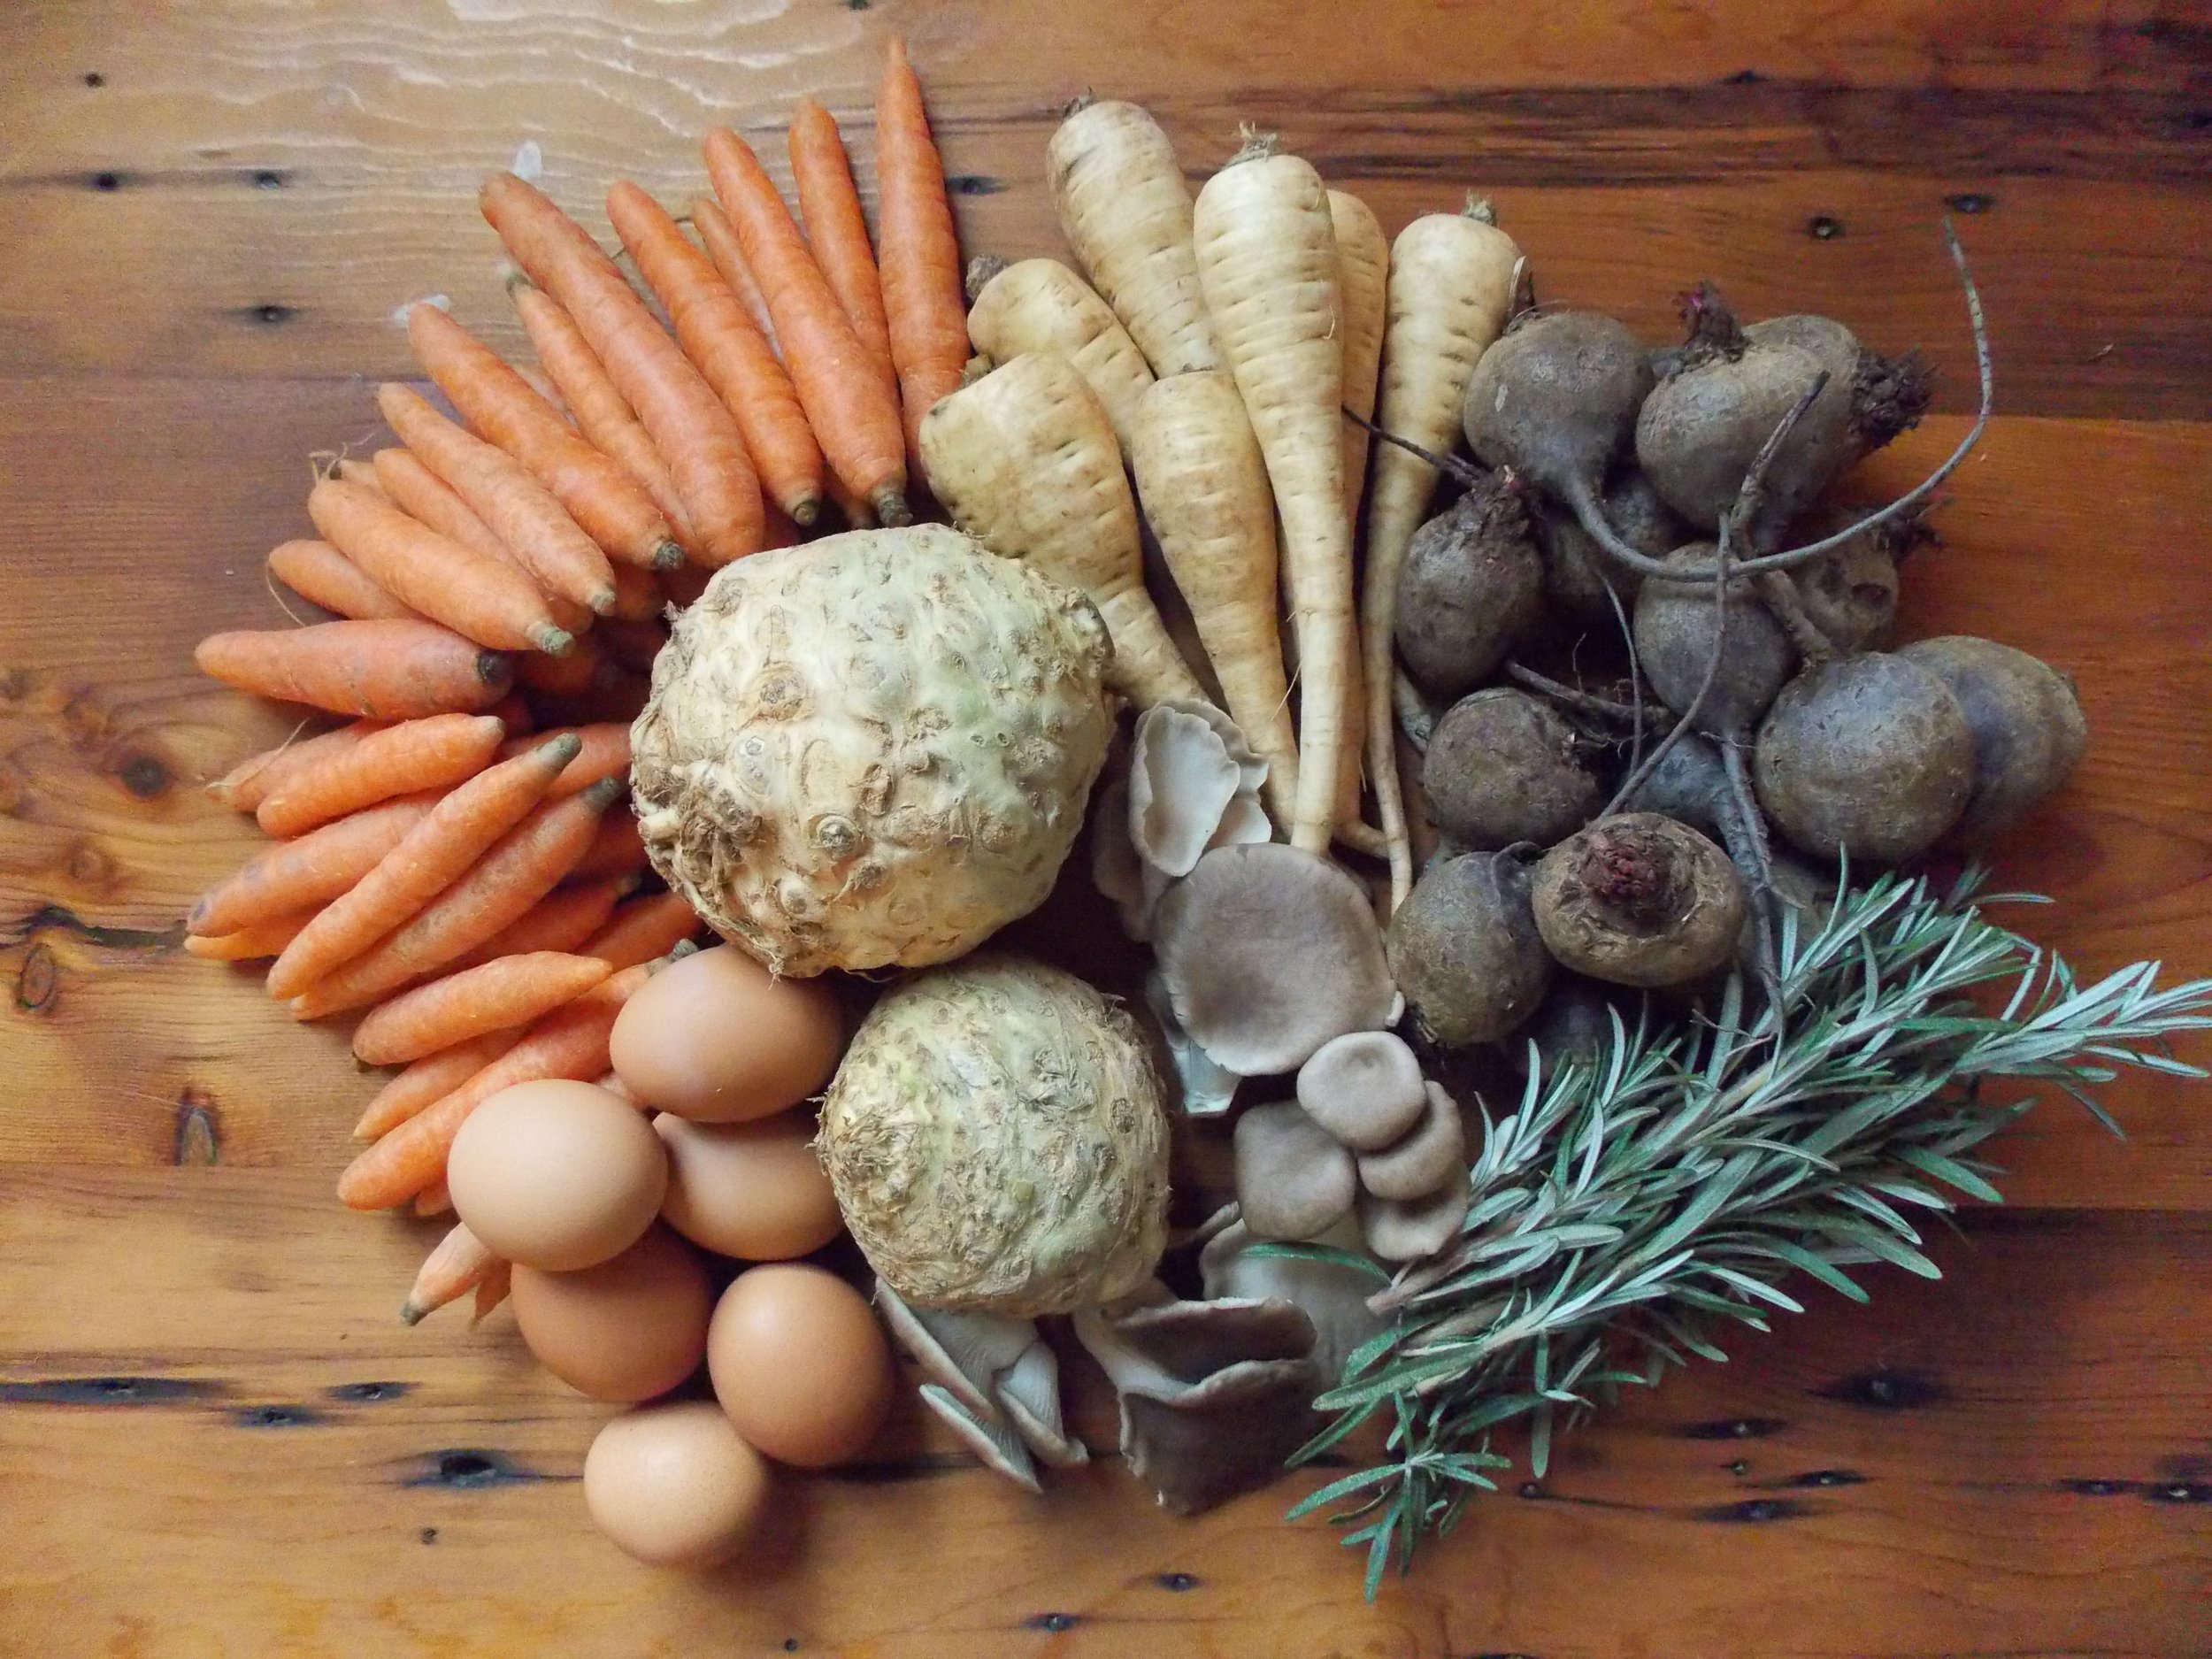 Vegetables, herbs, mushrooms, and eggs will be featured in our Spring Season Vermont Vegetable Package